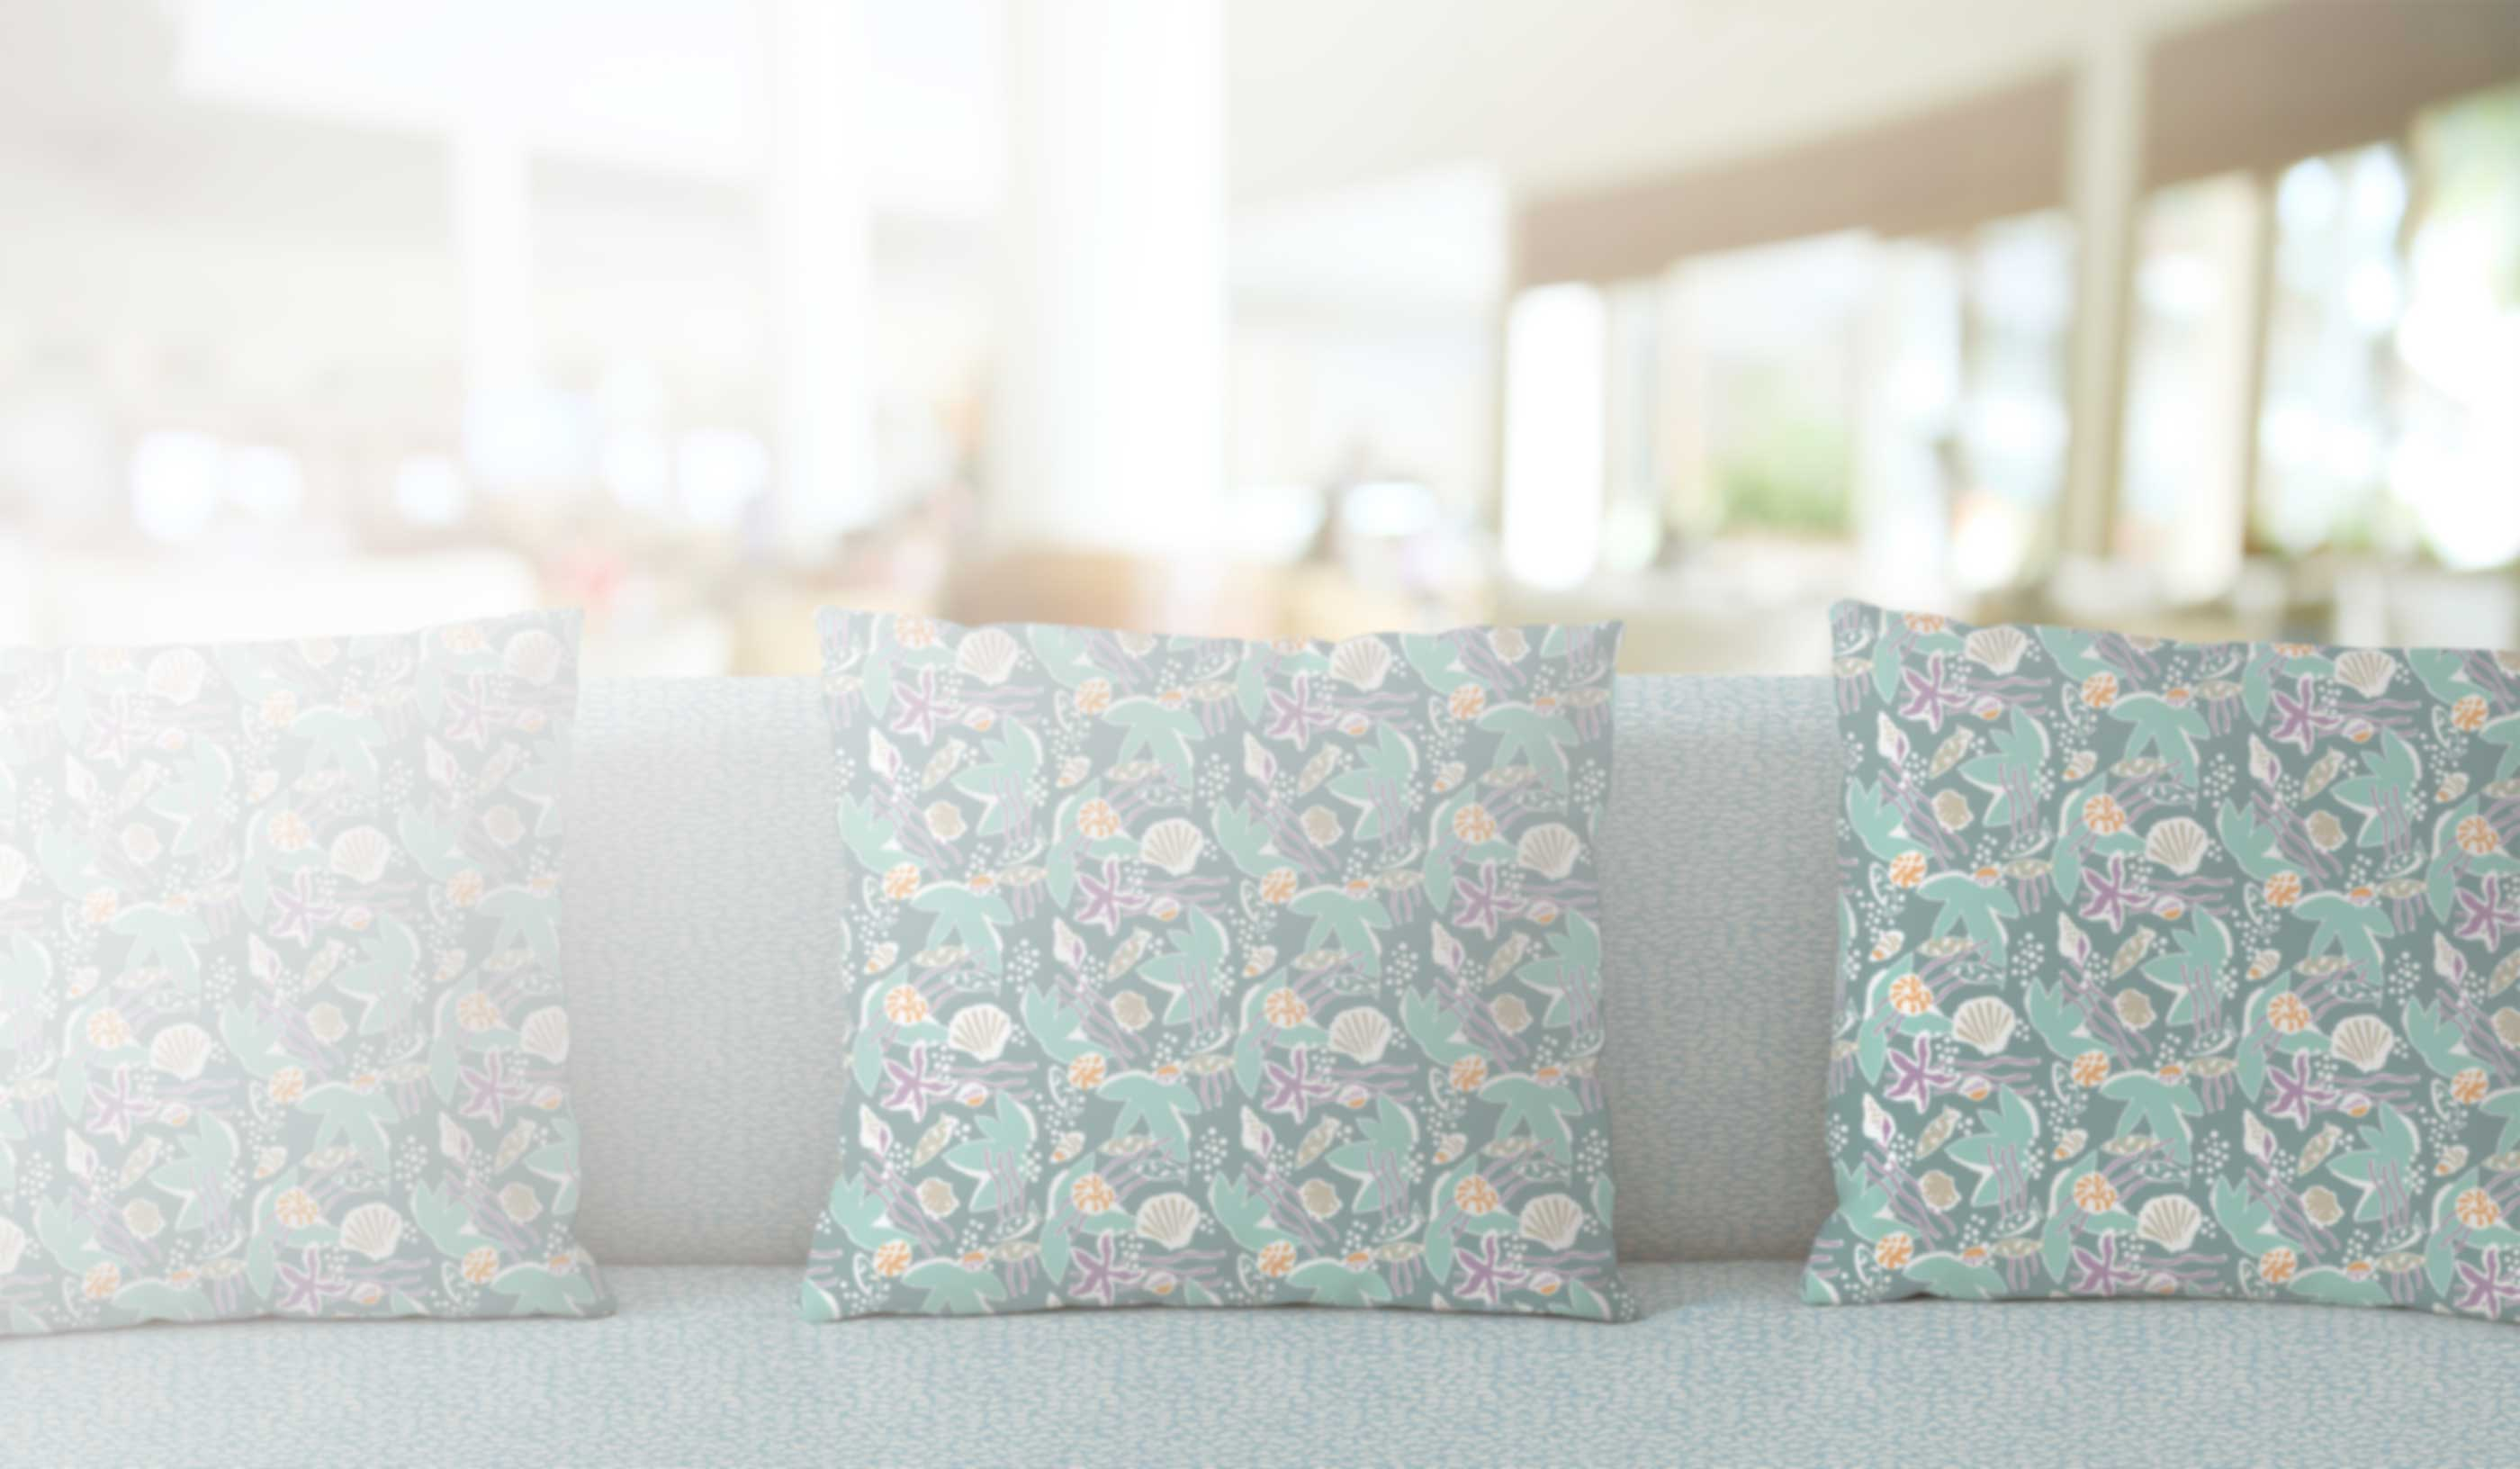 Build the perfect fabric. Choose Designs, Ground Fabric Options for Endless Creativity